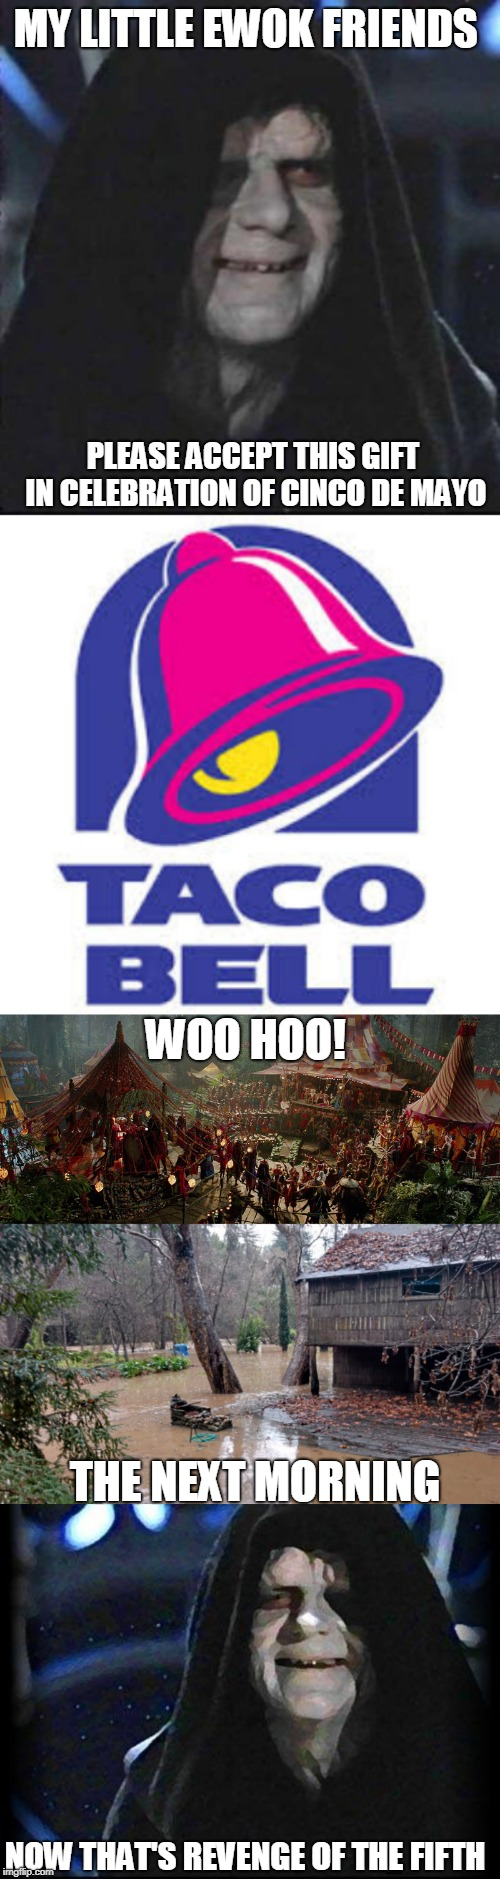 Feeling a little more evil than normal this morning | MY LITTLE EWOK FRIENDS NOW THAT'S REVENGE OF THE FIFTH PLEASE ACCEPT THIS GIFT IN CELEBRATION OF CINCO DE MAYO WOO HOO! THE NEXT MORNING | image tagged in memes,sidious error,emperor palpatine,taco bell logic,revenge of the fifth | made w/ Imgflip meme maker